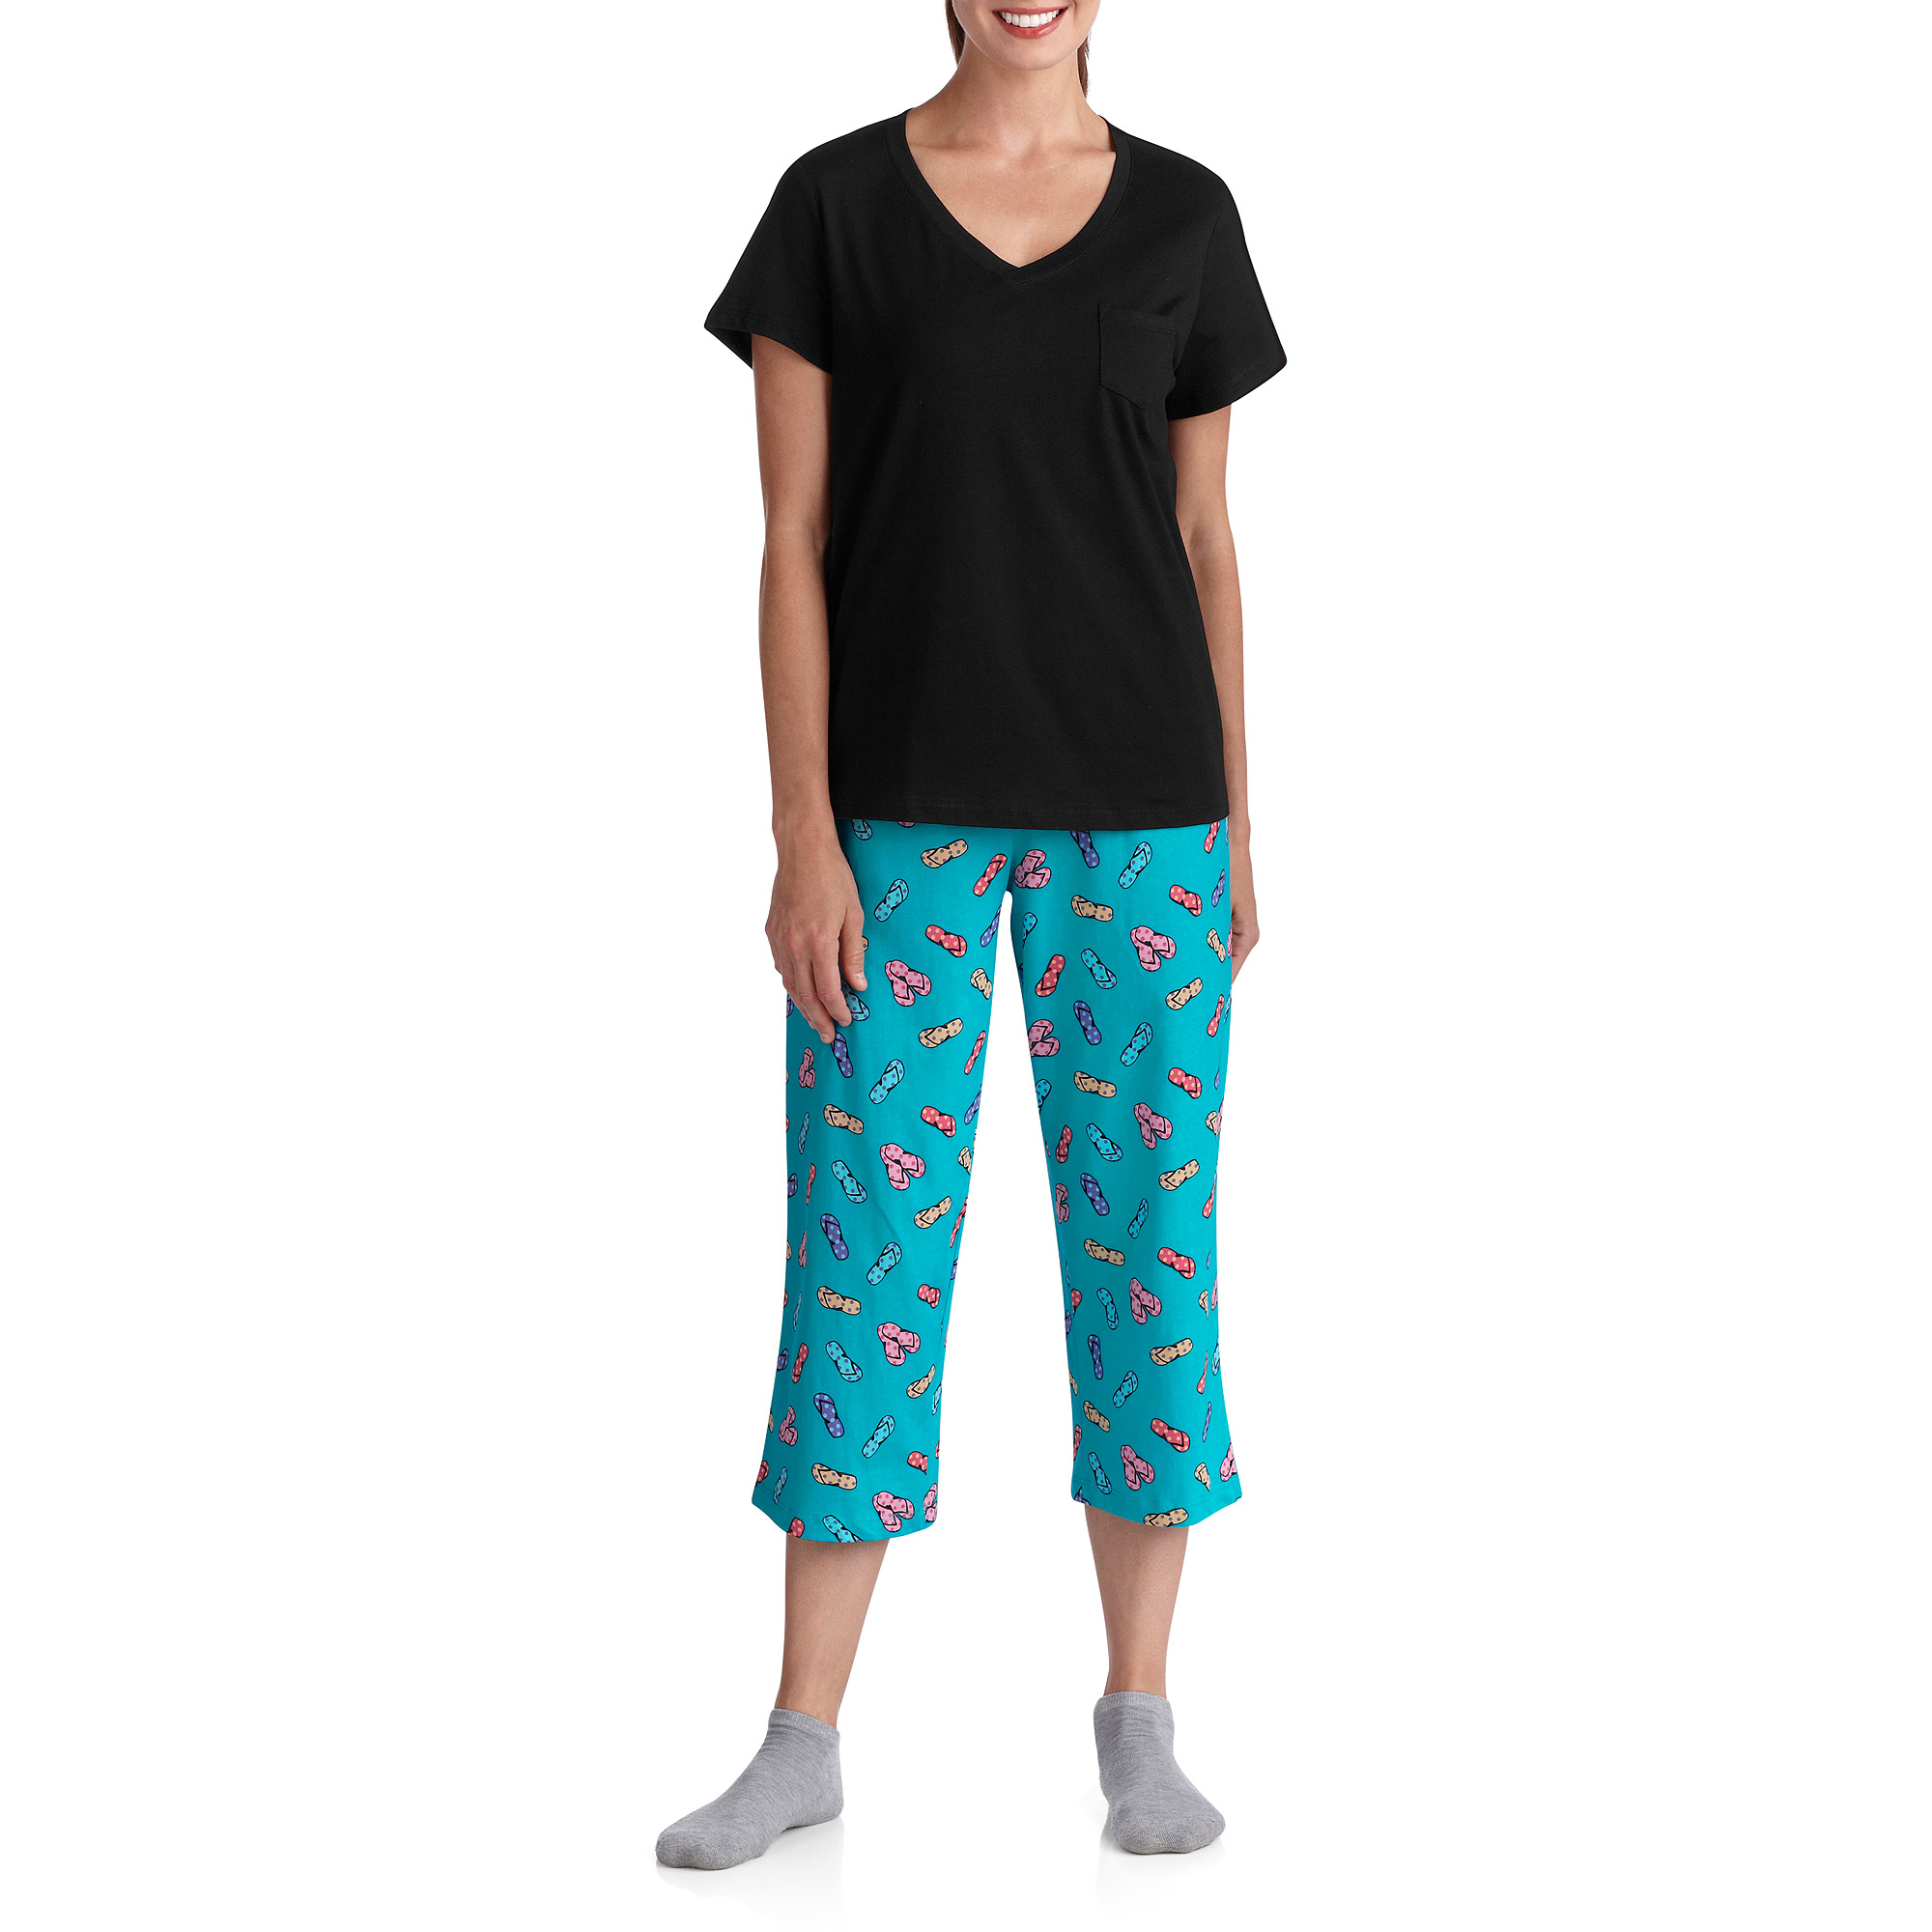 White Stag Women's V Neck Sleep Shirt and Pant PJ Set with Pocket